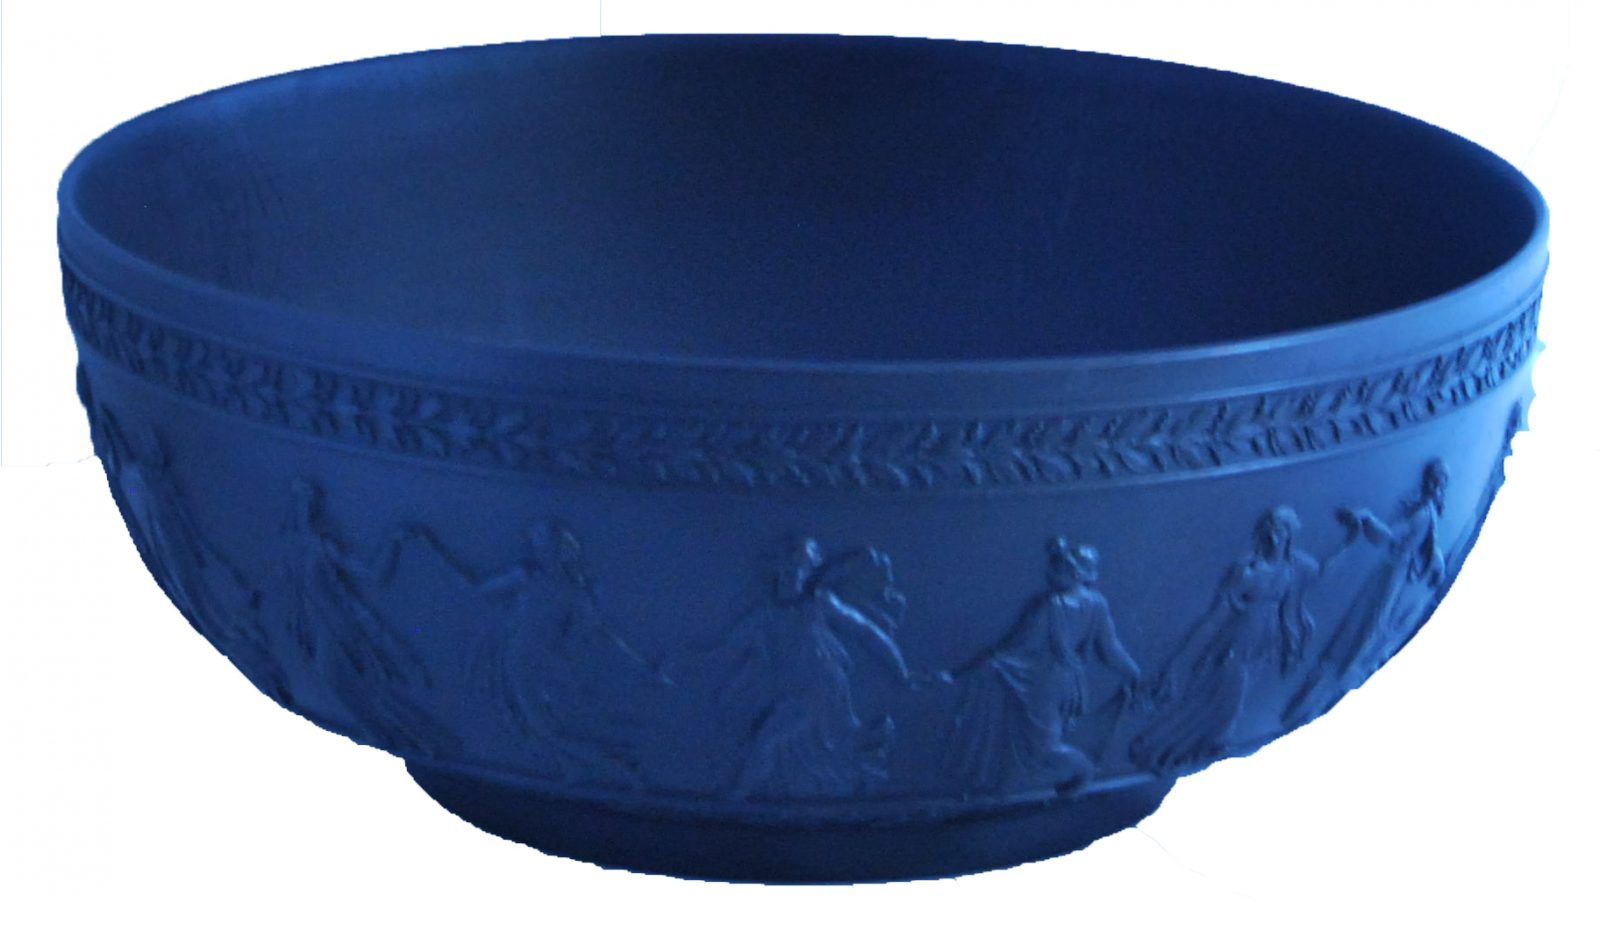 Wedgwood Jasperware Black Basalt Bowl